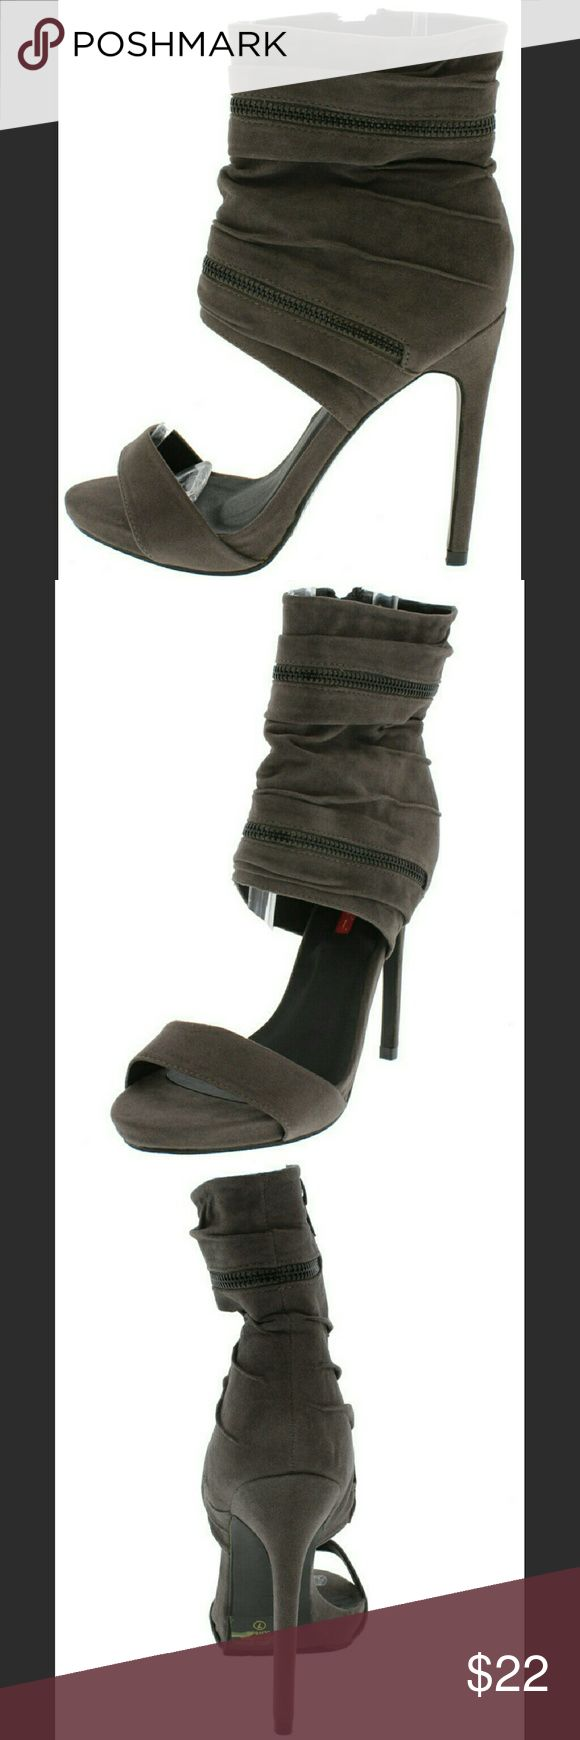 NEW Grey Open Toe Zipper Ankle Cuff Sandal Heels Life's too precious to wear boring shoes! Let us take you to the next level! These heels marry chicwith elegance. Pair them with some skinny jeans or a mini skirt and let the selfies begin!!  Comes with extra heel tips- easy to self replace and will extend the life span of the shoes Side closure zipper Heel height 4.5 inches approx Fit: True to size Man made C. Label Shoes Heels